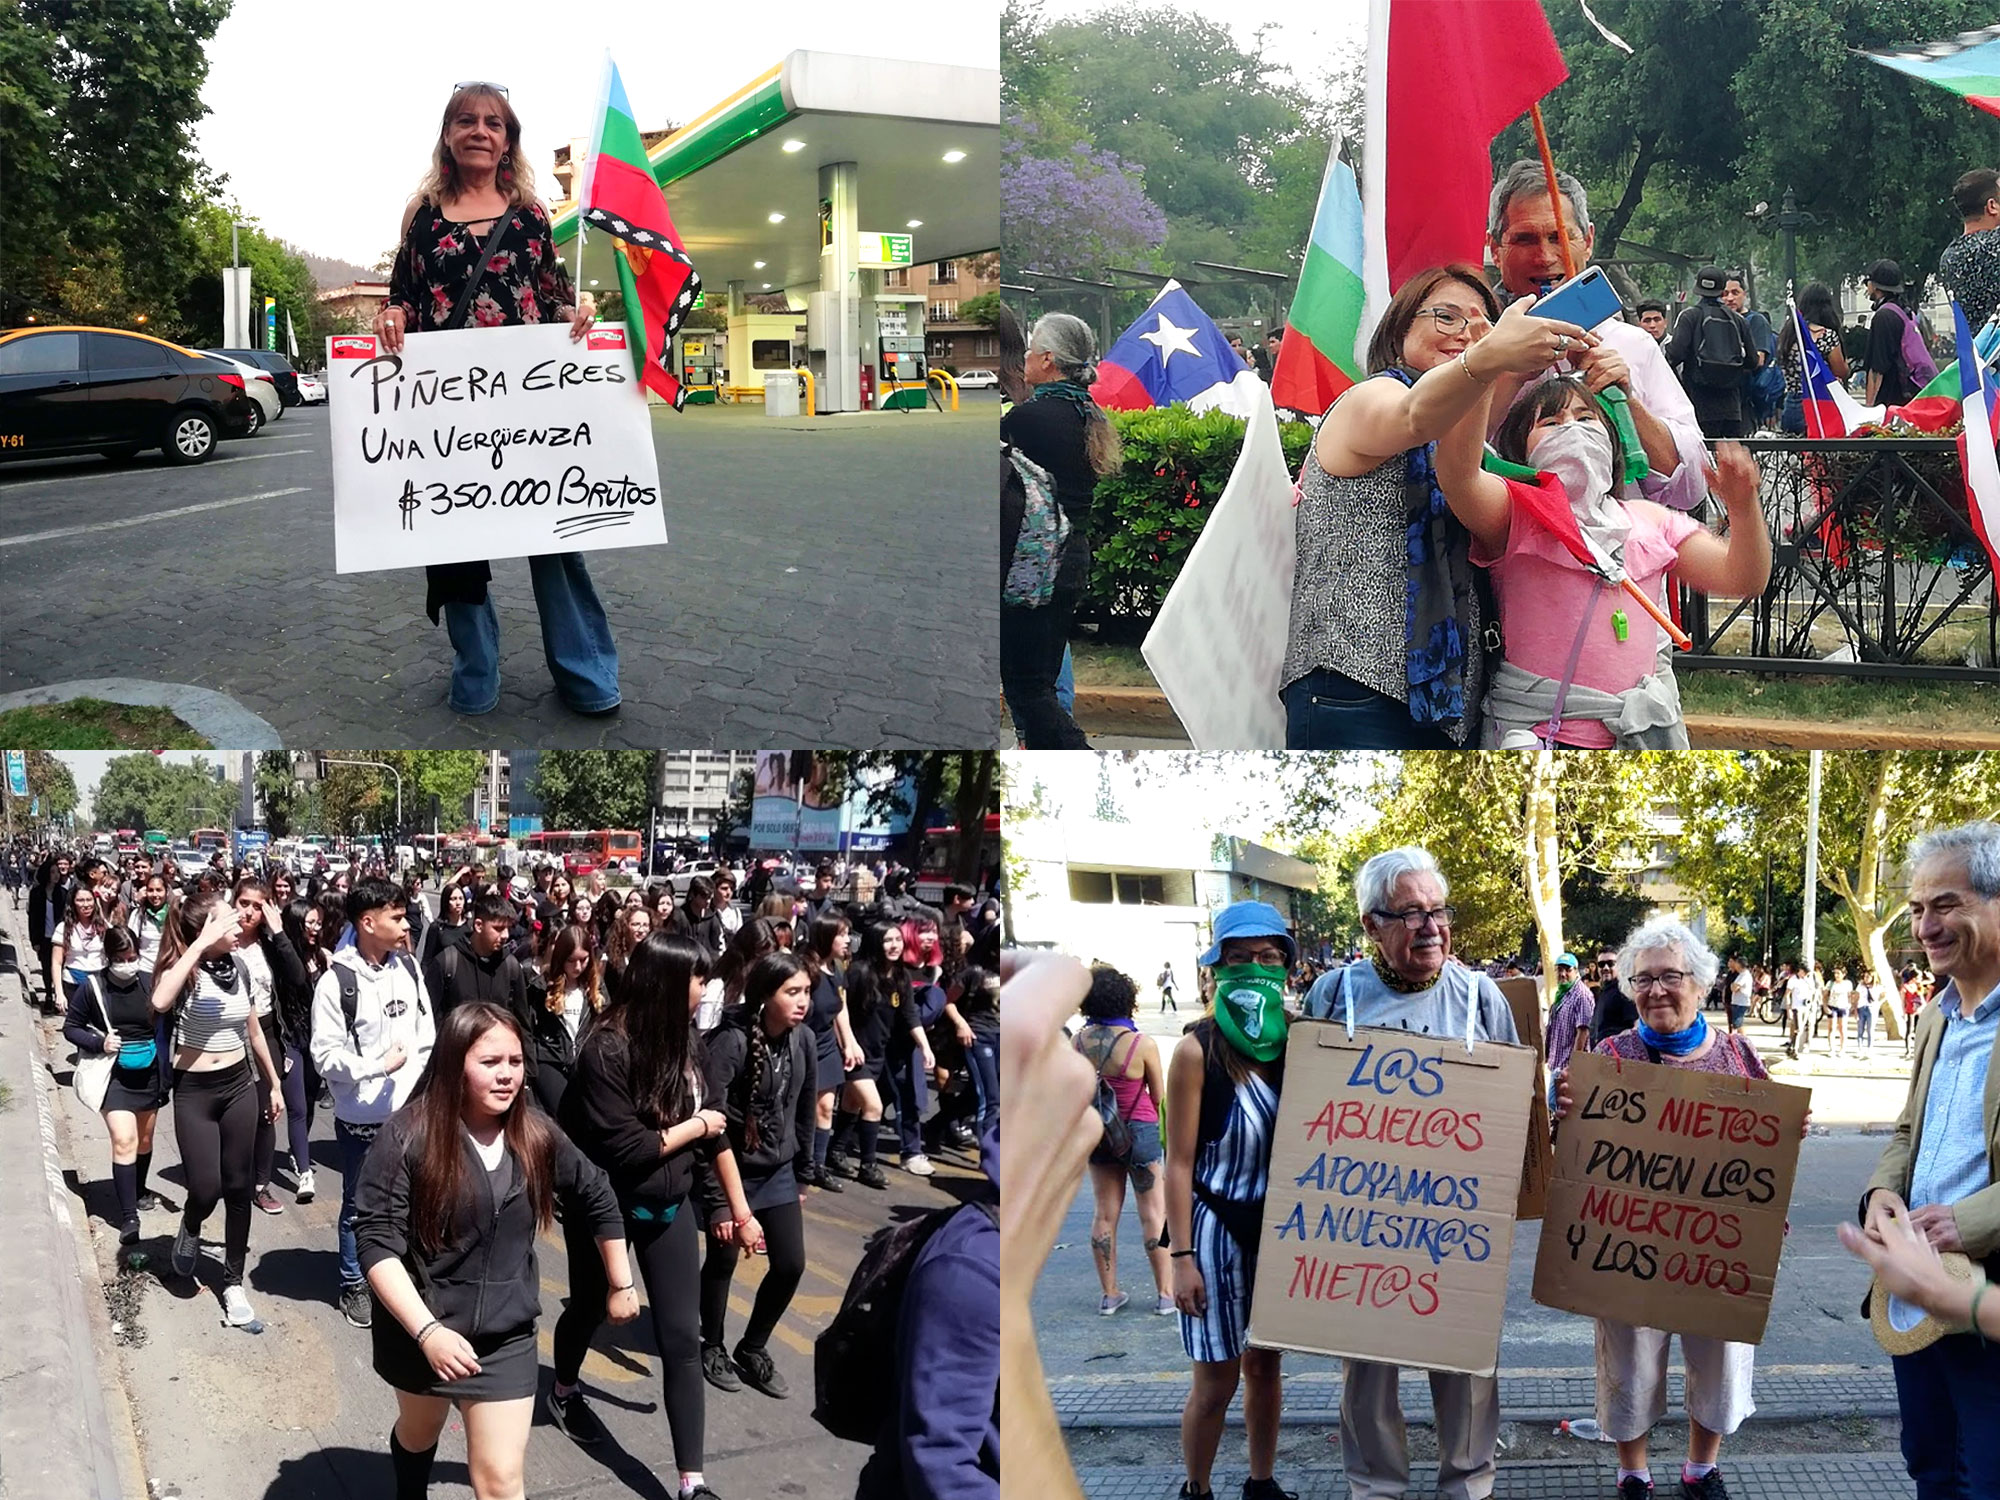 Four photos: a woman with a banner, a family taking a selfie, students marching, an old couple with banners